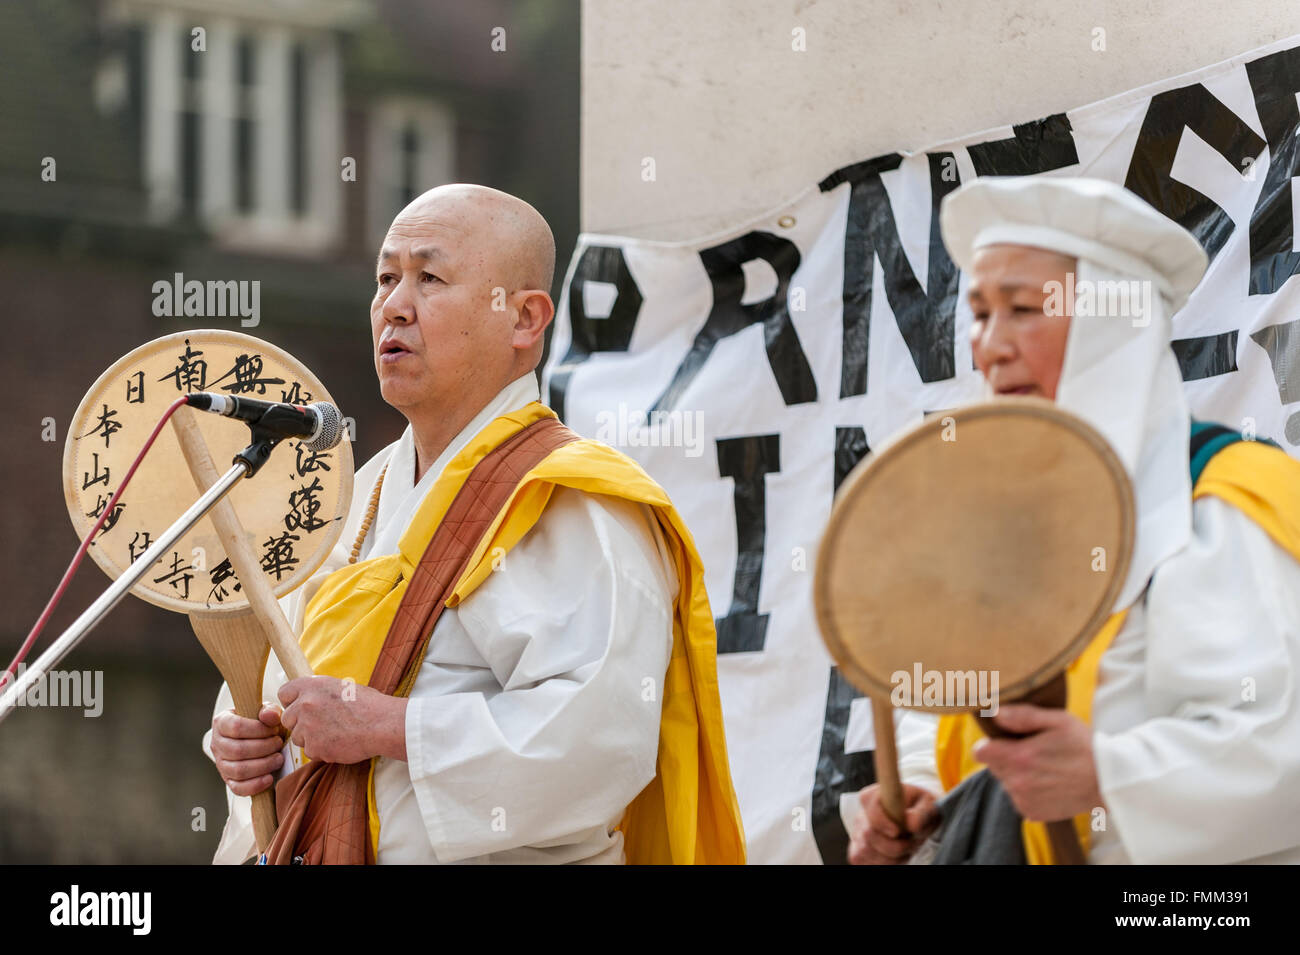 London, UK. 12 March 2016. The Reverend Nagase, a senior Buddhist monk at the Battersea Park Peace Pagoda, And Sister - Stock Image